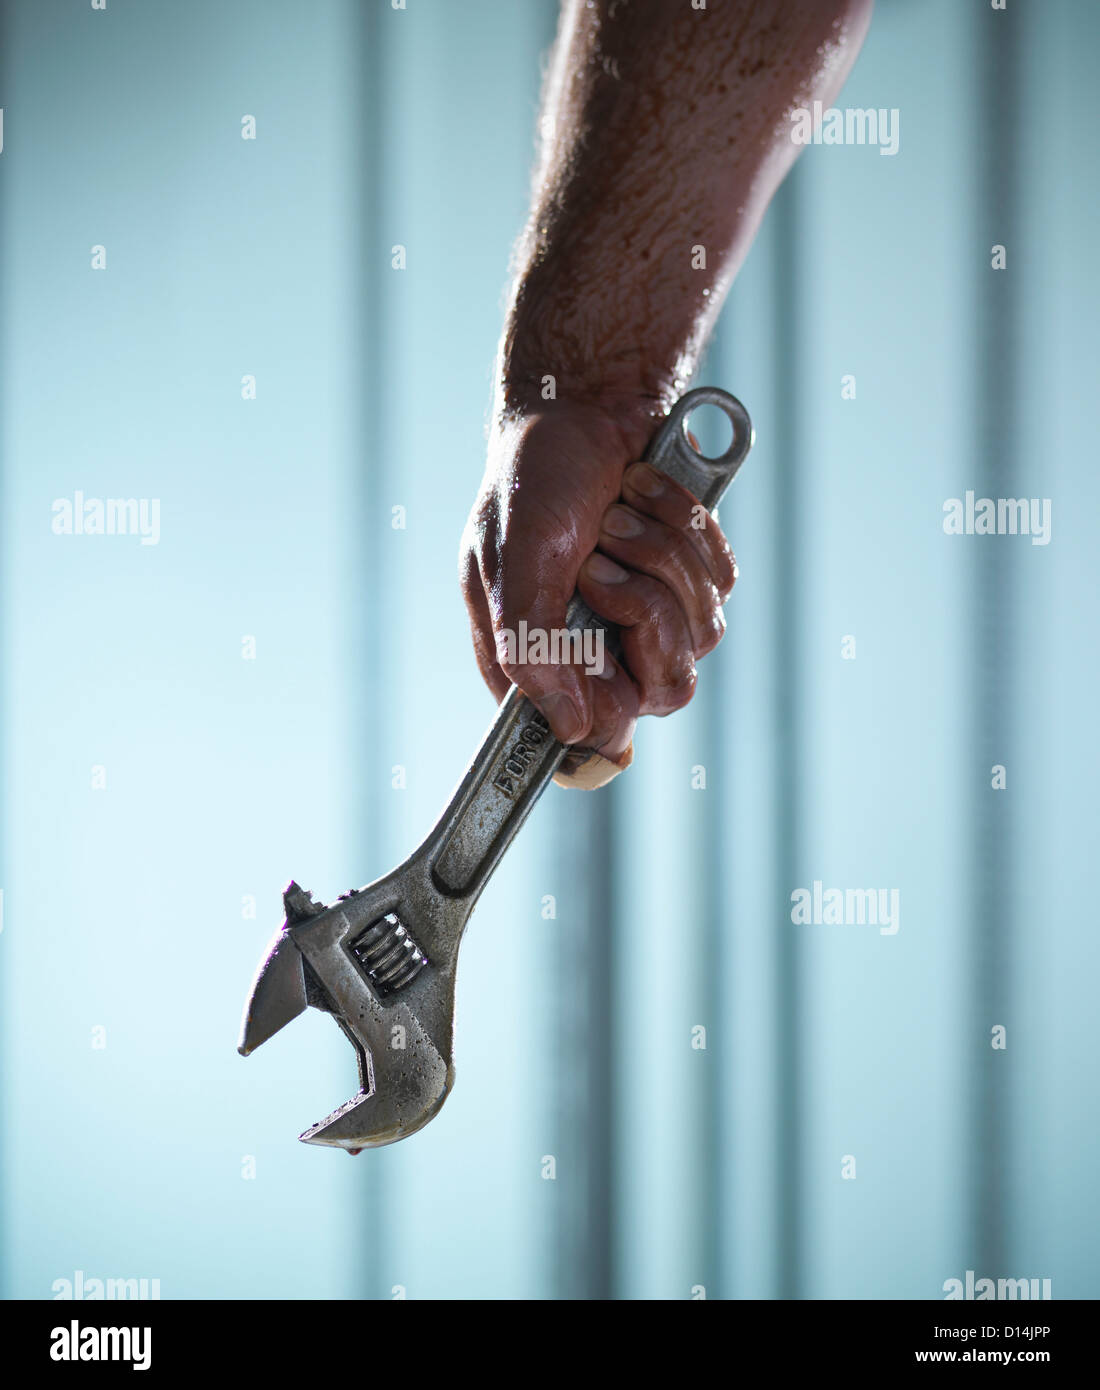 Close up of hand holding wrench - Stock Image